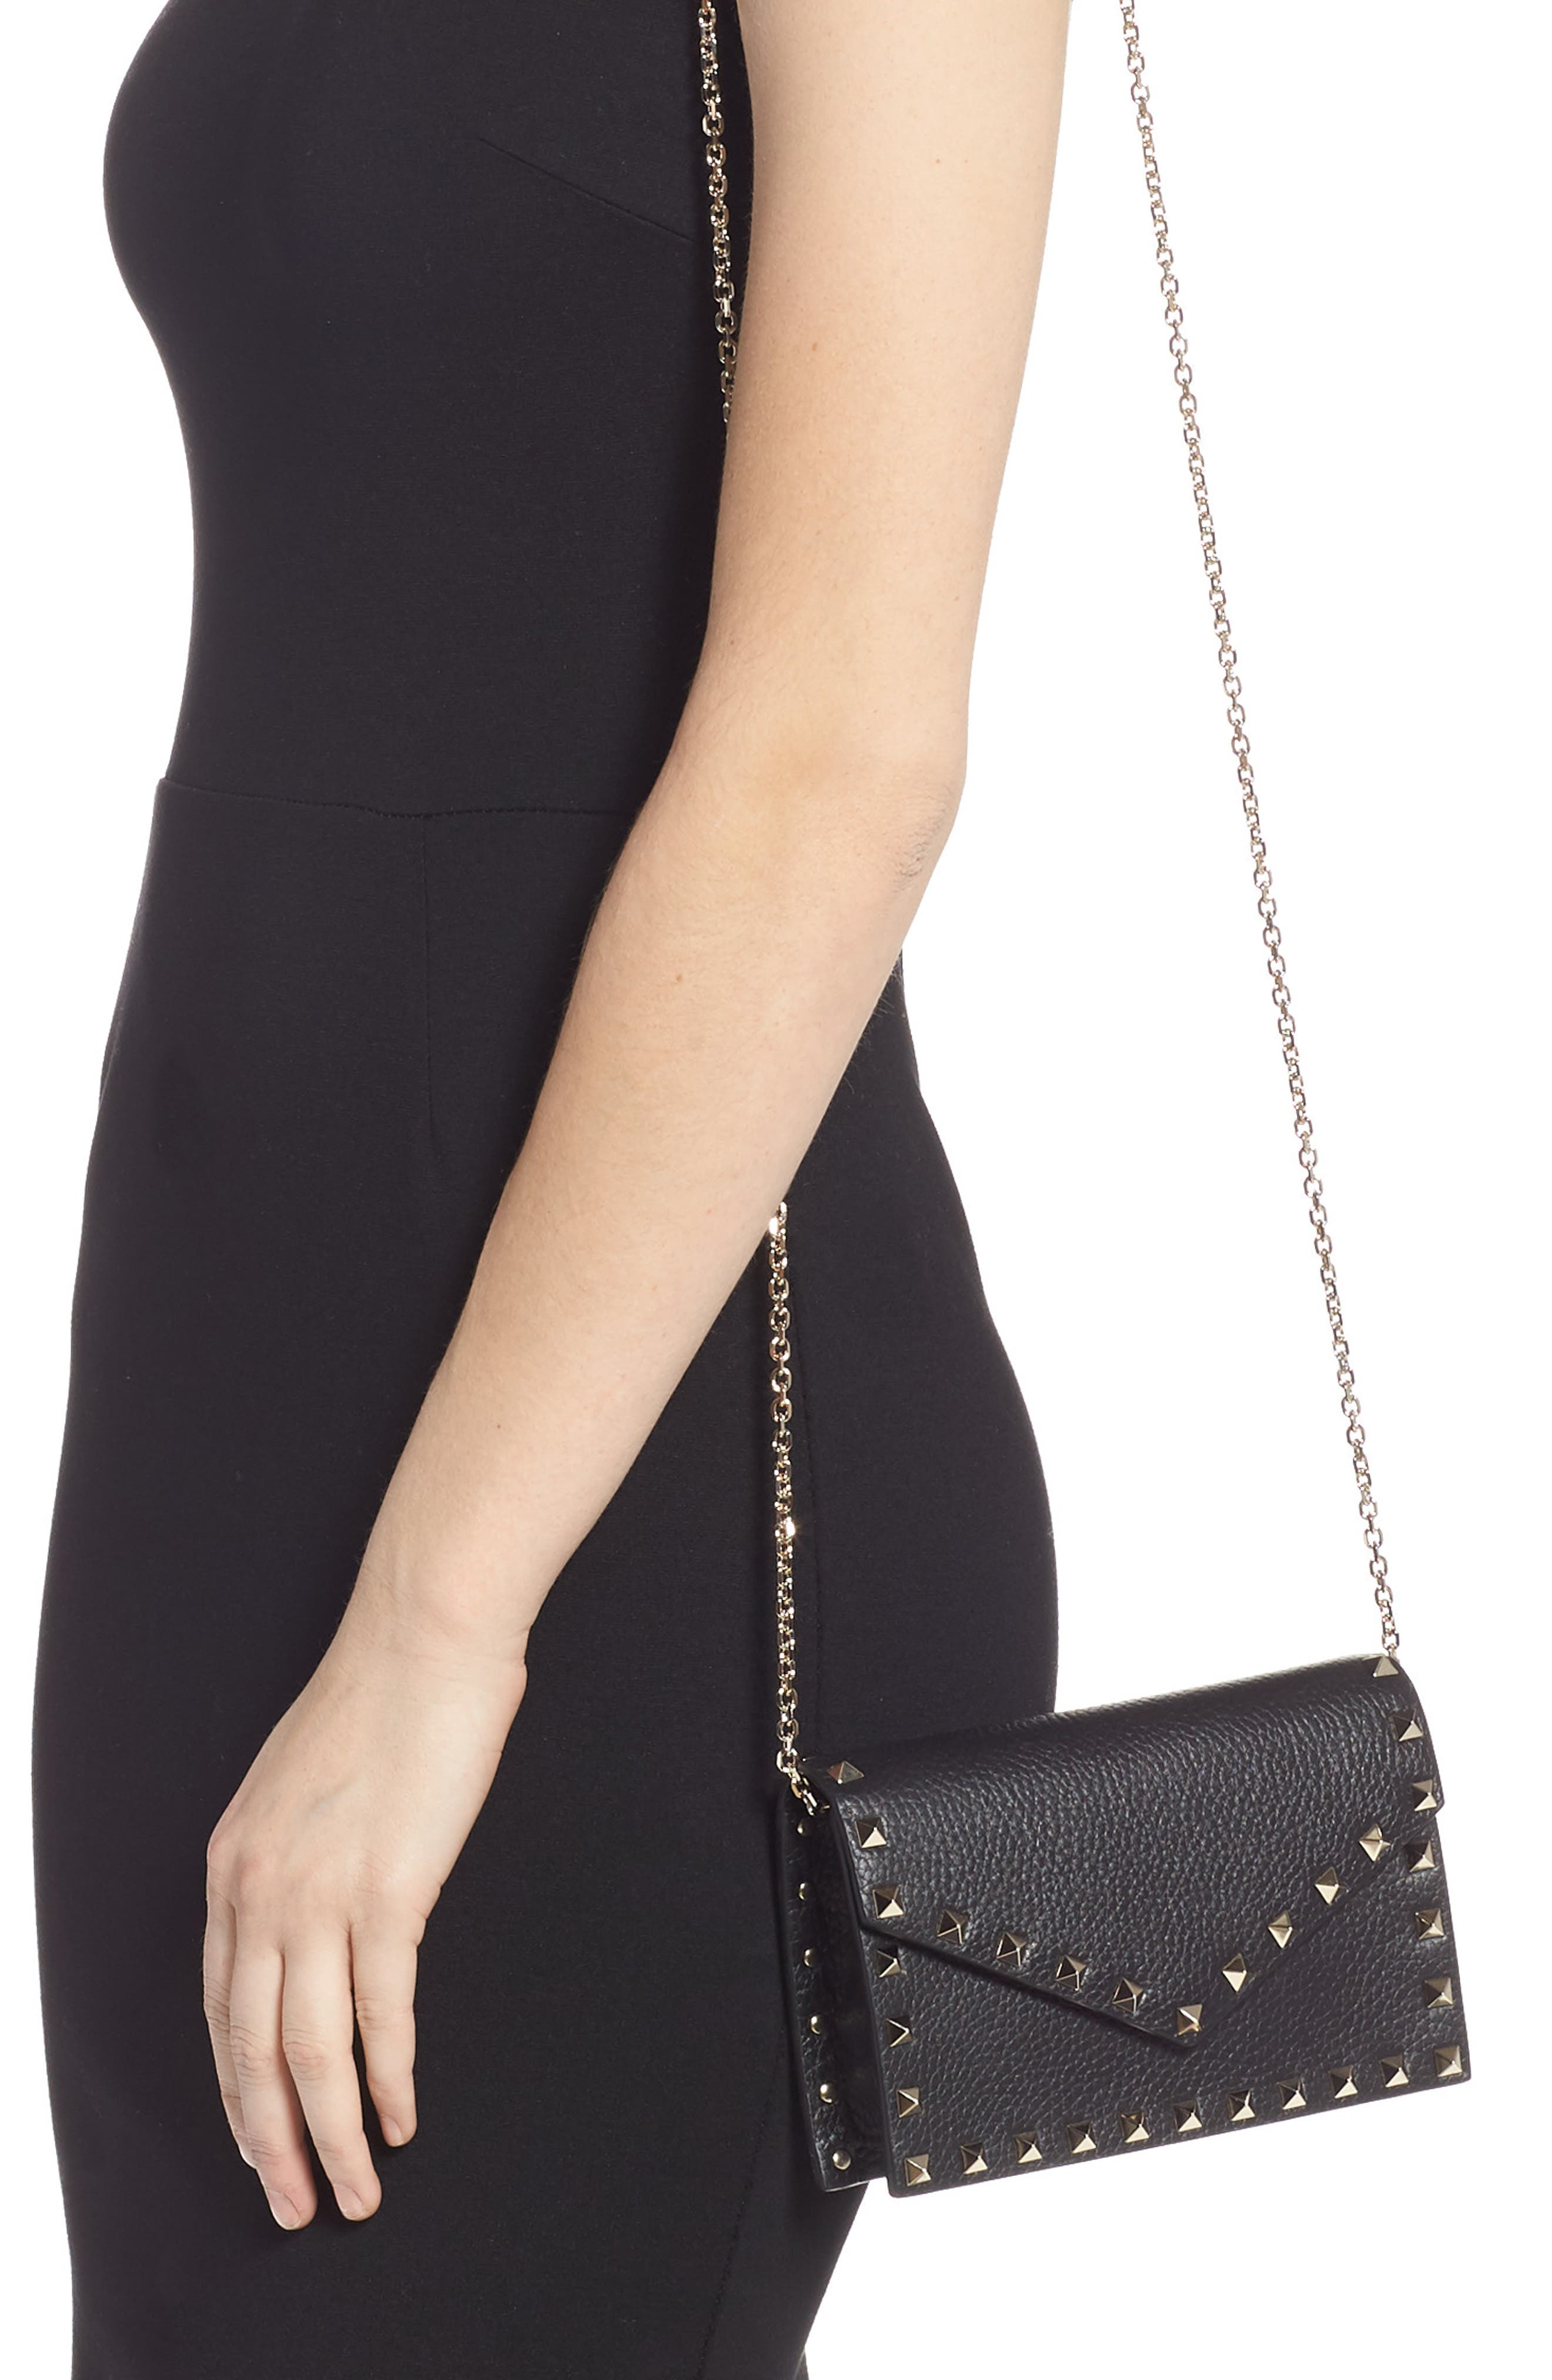 VALENTINO GARAVANI,                             Rockstud Calfskin Leather Envelope Pouch,                             Alternate thumbnail 2, color,                             NERO